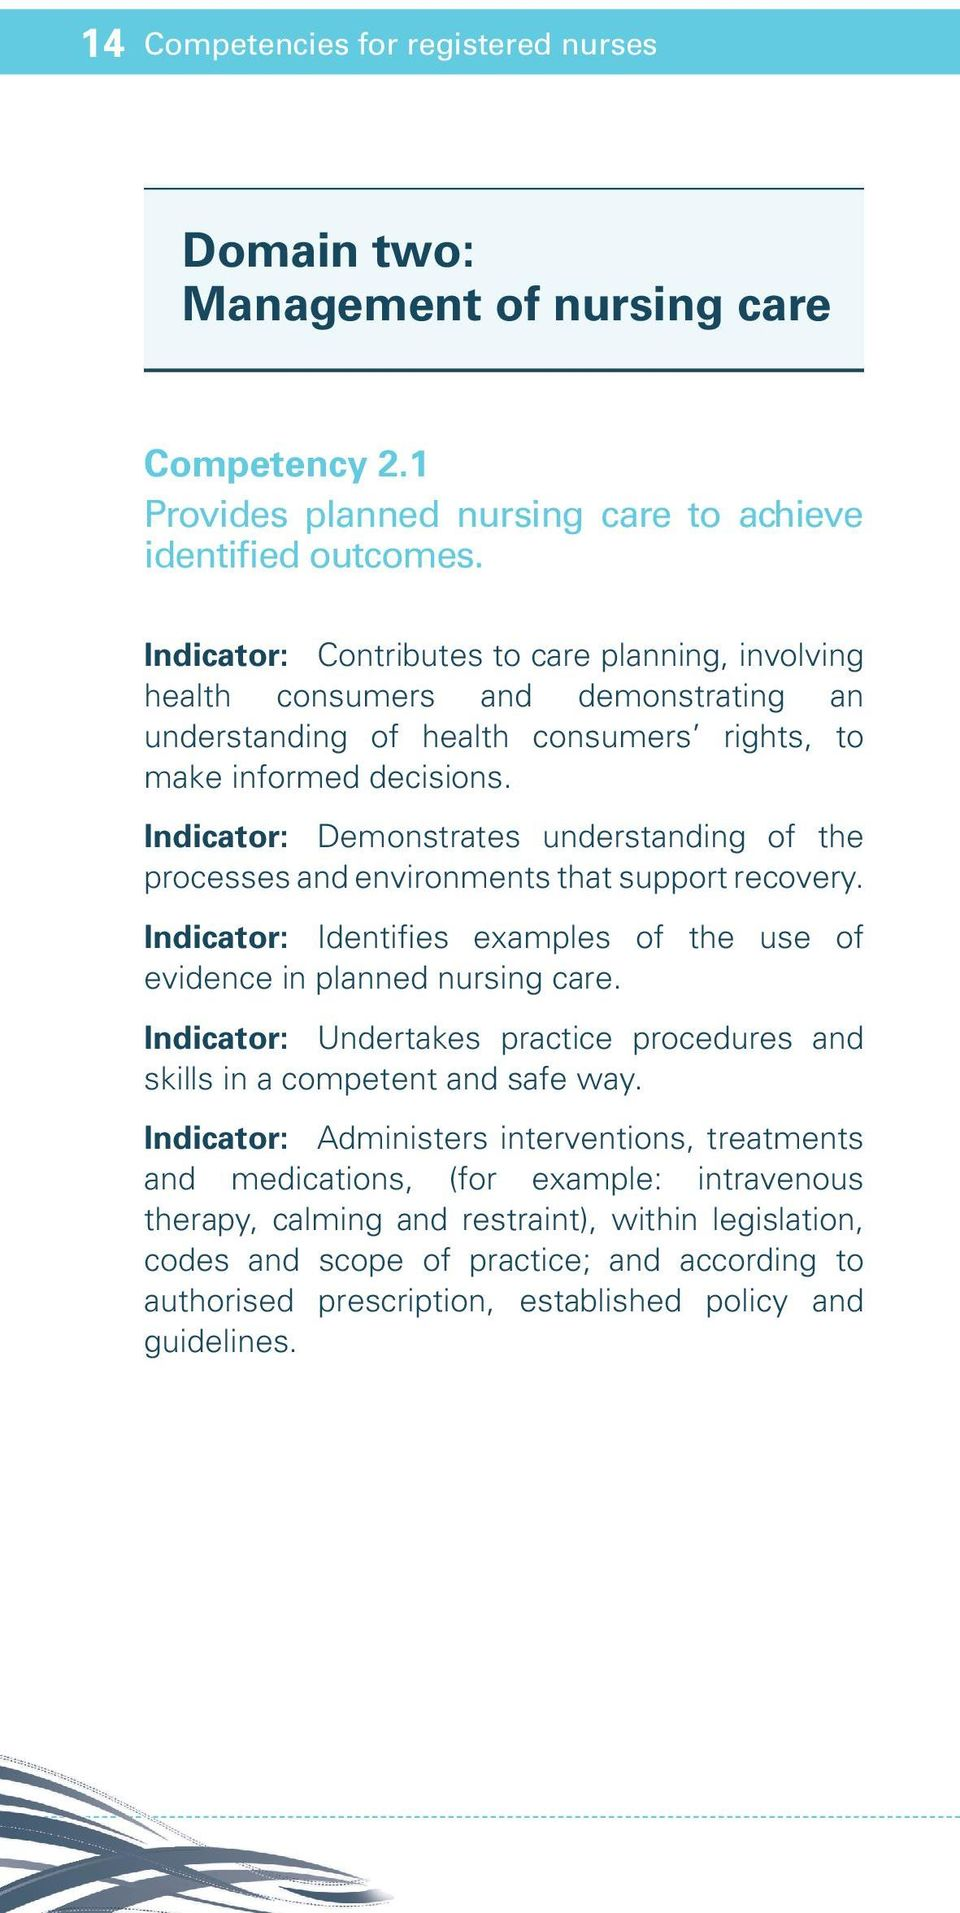 Indicator: Demonstrates understanding of the processes and environments that support recovery. Indicator: Identifies examples of the use of evidence in planned nursing care.